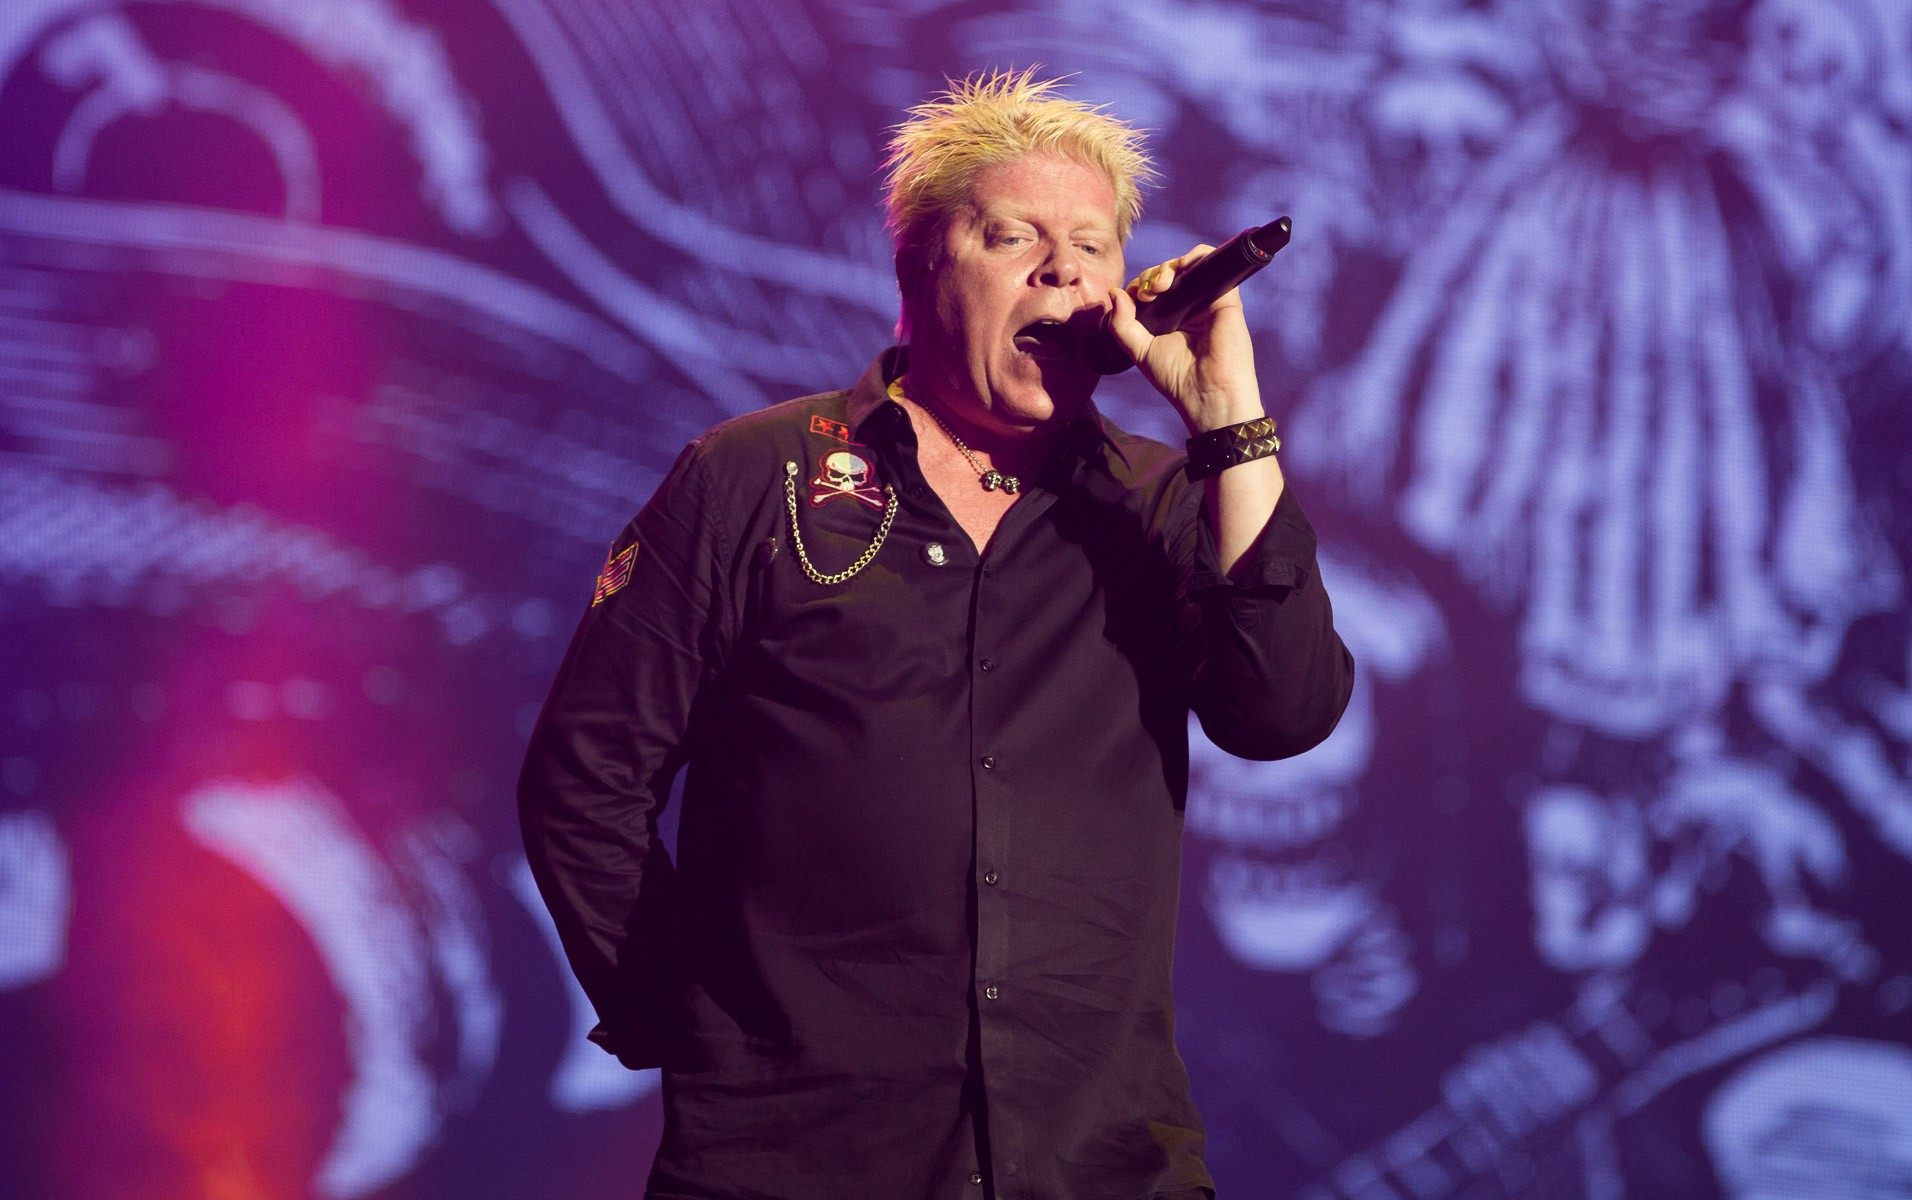 24-09 - MUNDO - The Offspring - Rock in Rio 2017 (Foto: Andr Bittencourt)